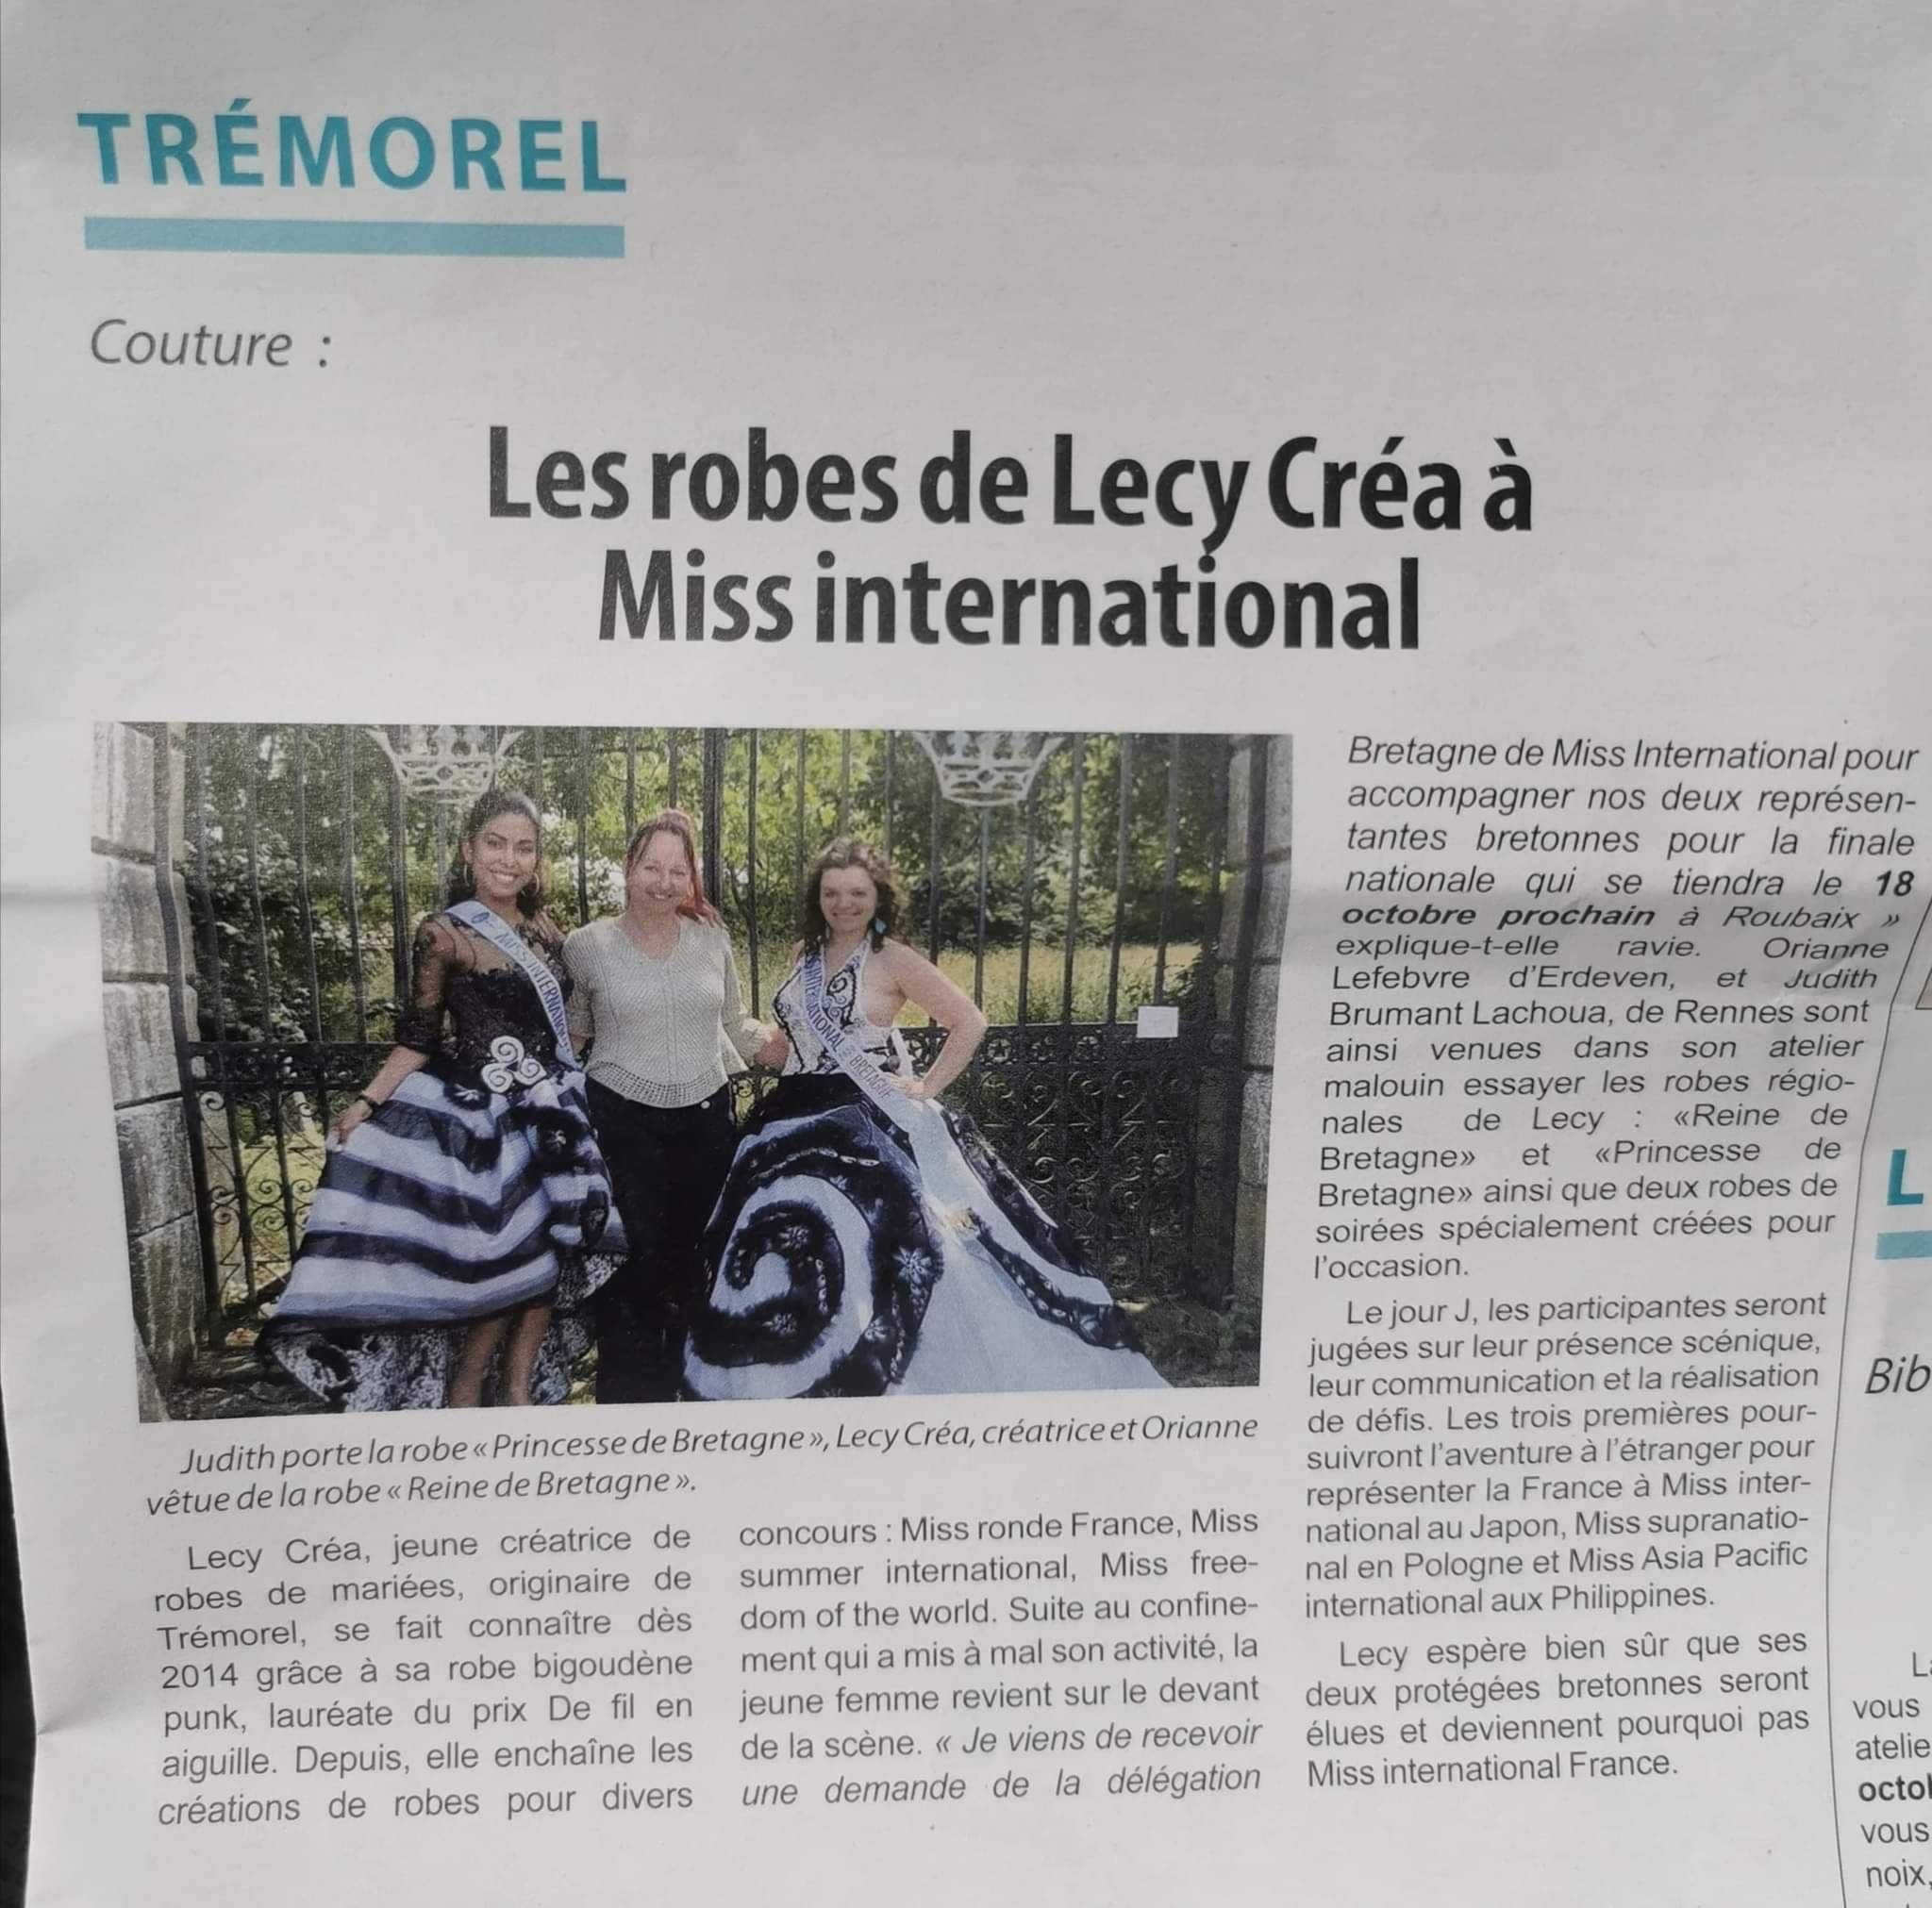 lecy-crea-miss-internationale-créatrice-